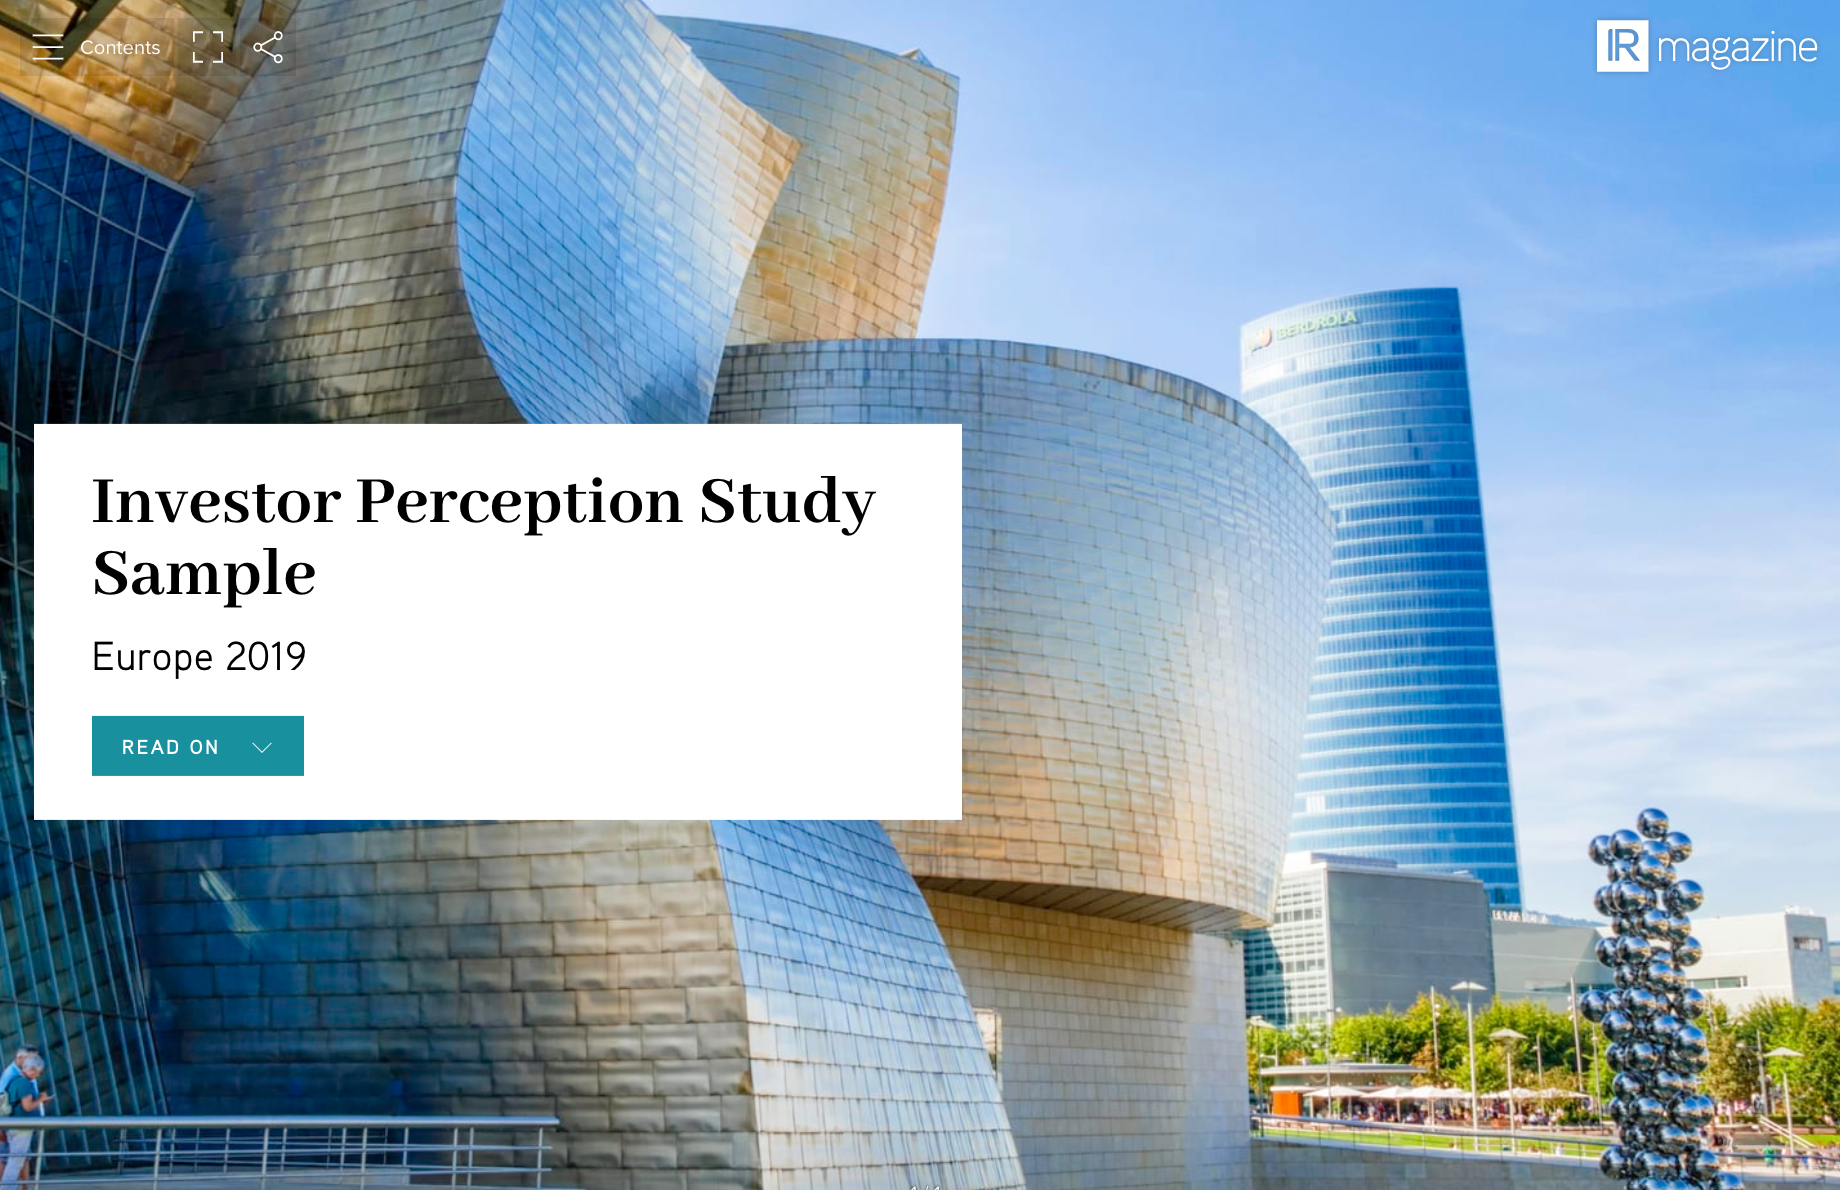 Investor Perception Study - Europe 2019